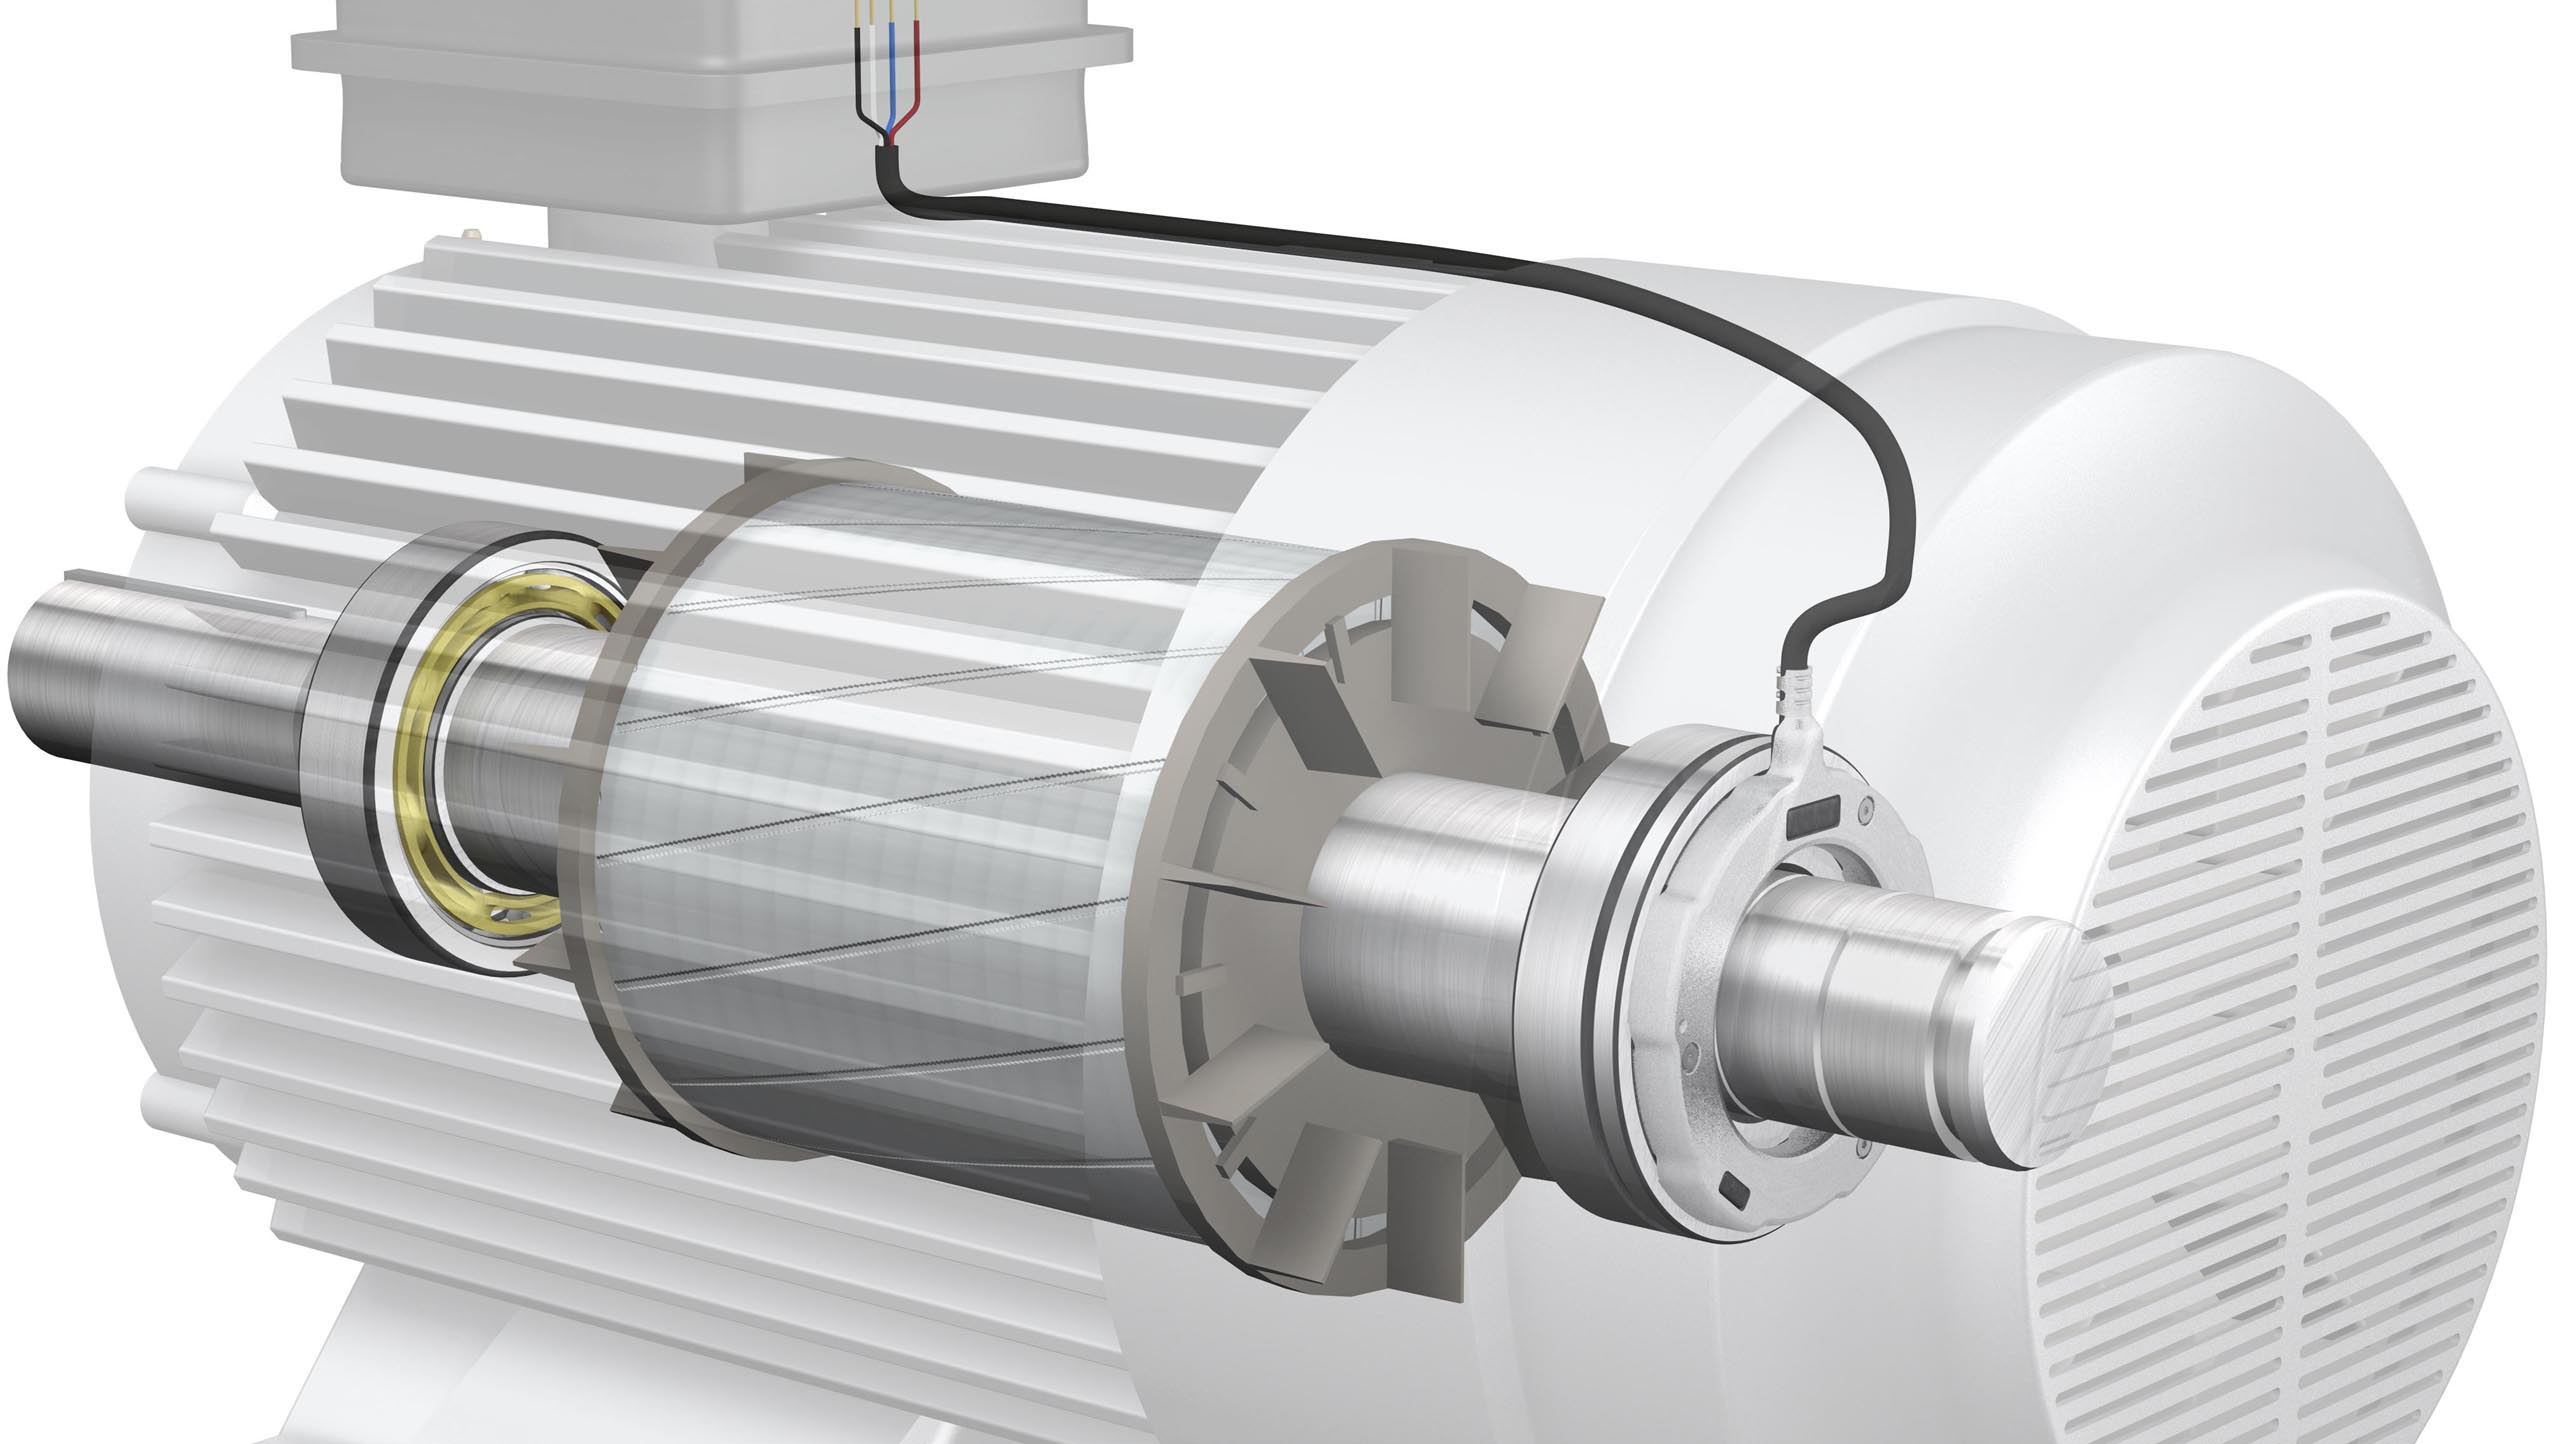 Electric motor fitted with sensorised bearing